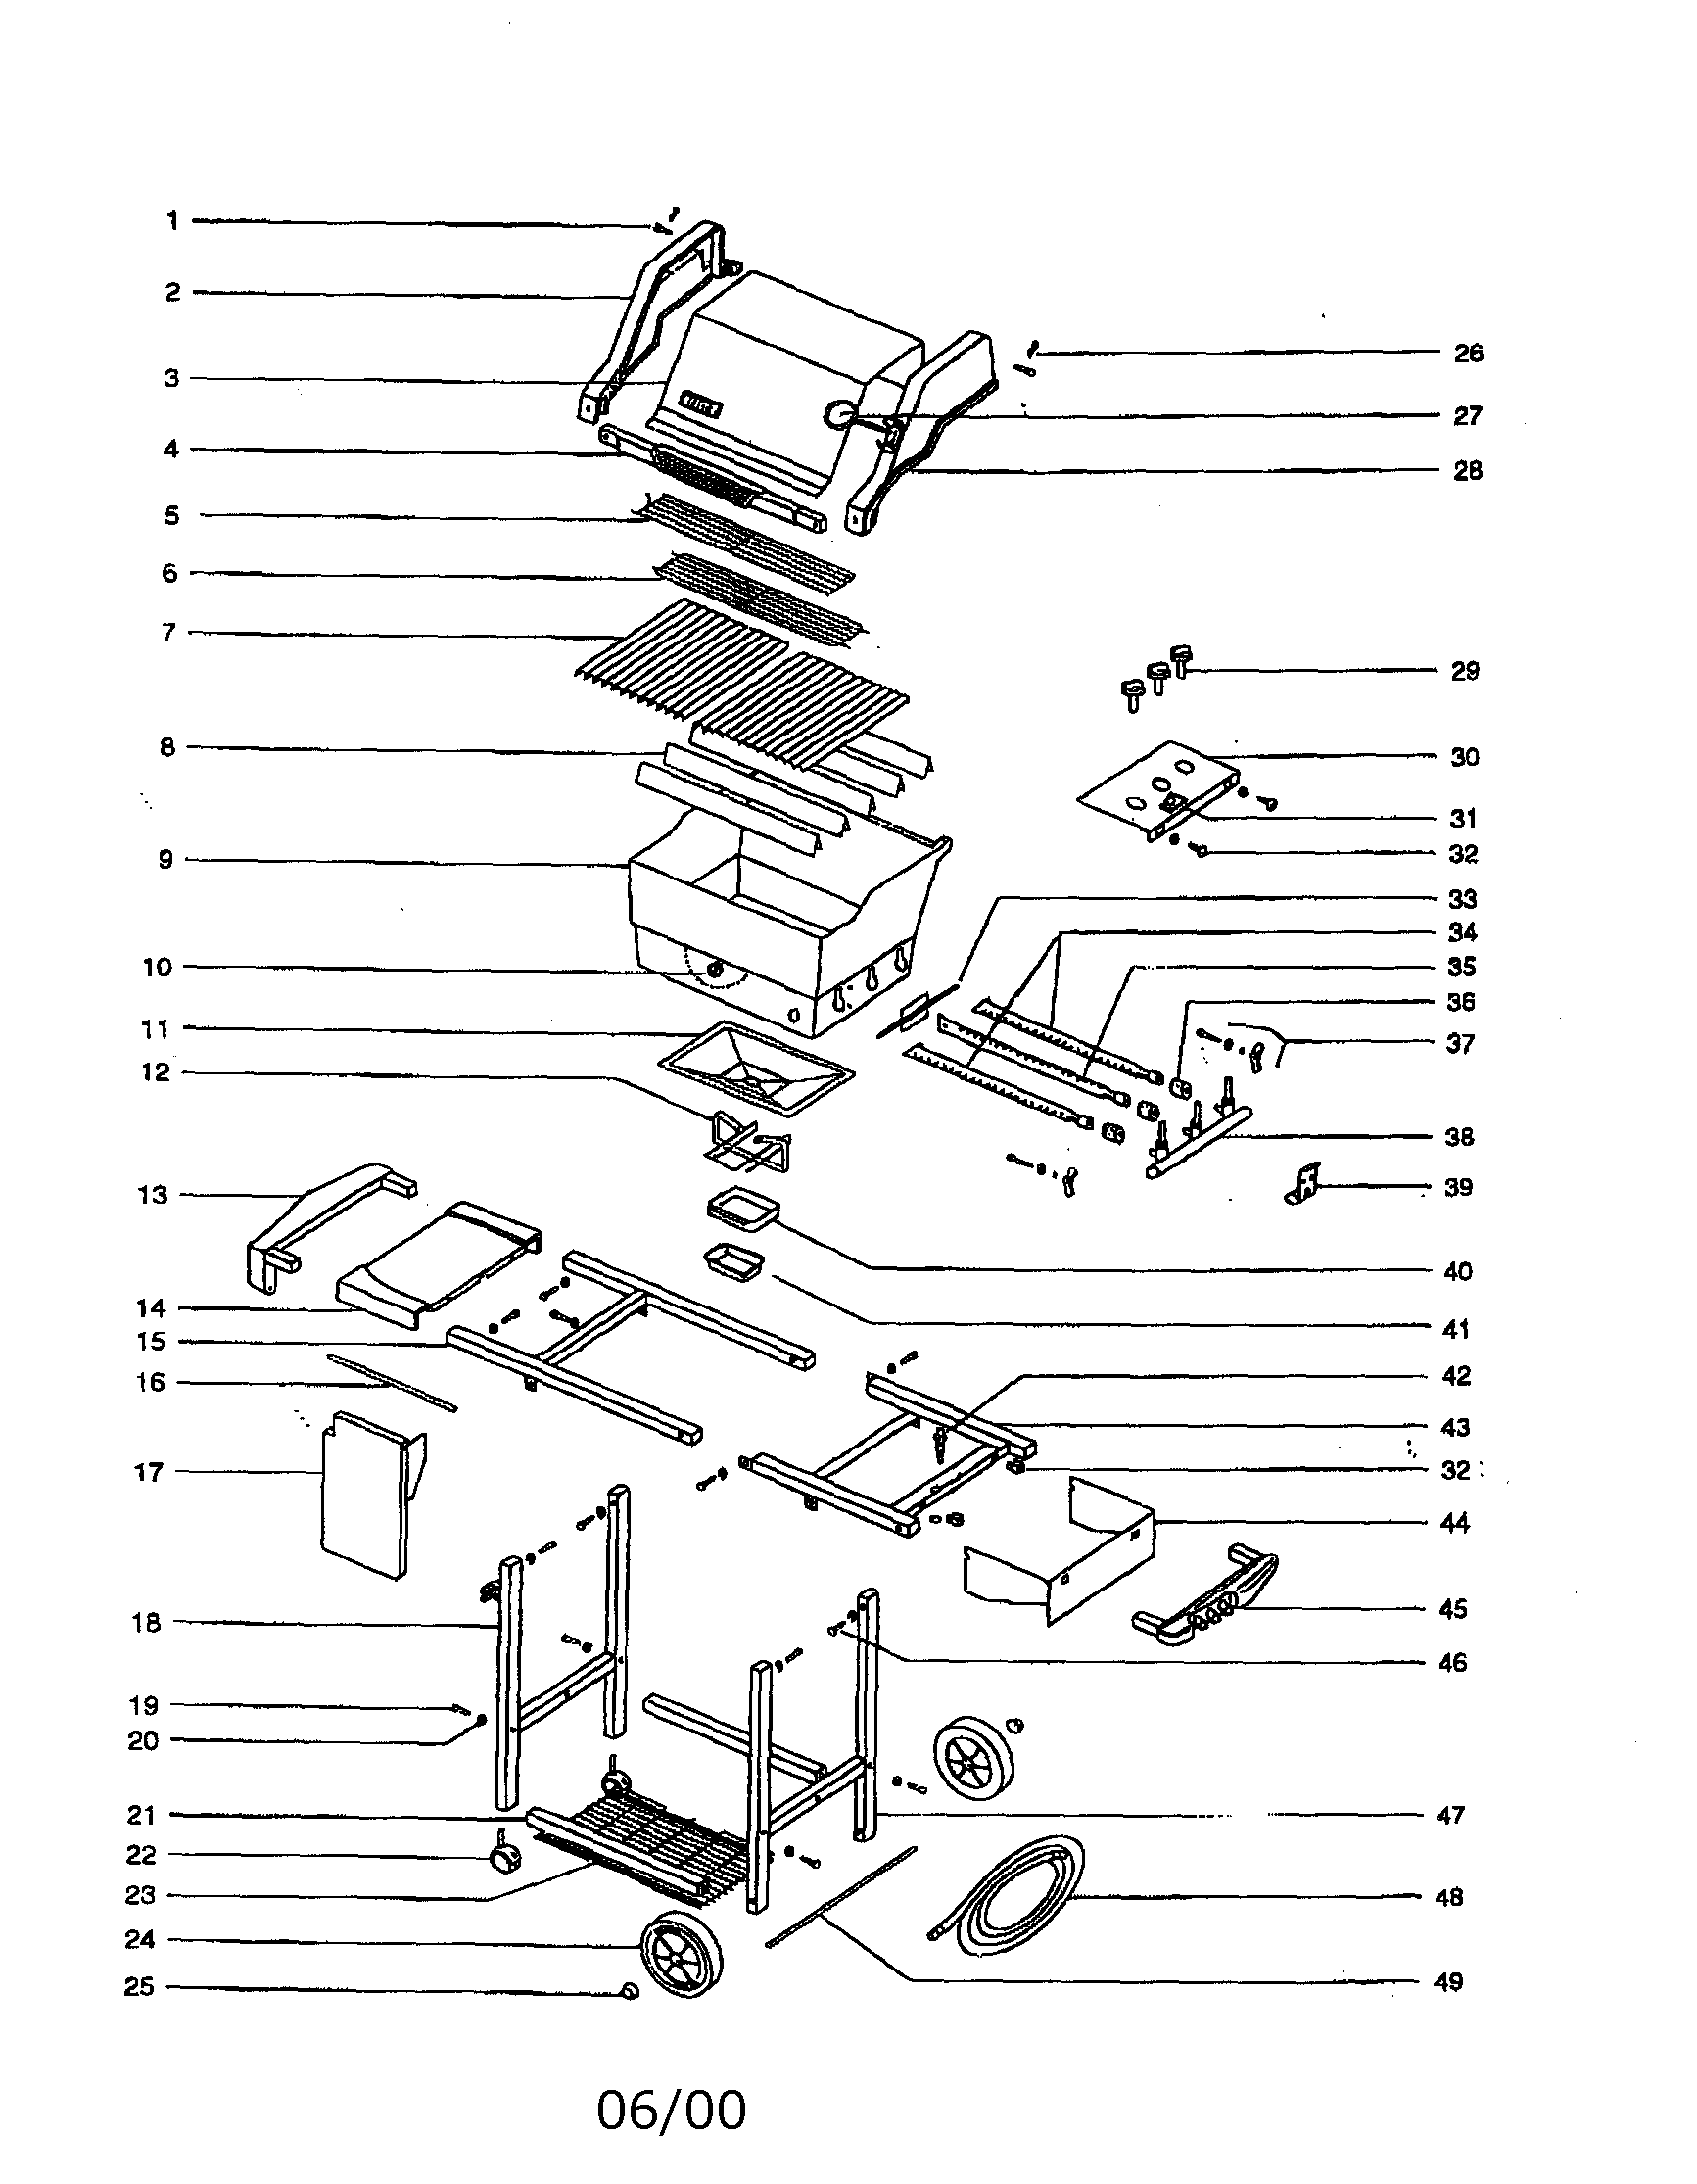 hight resolution of weber genesis silver b ng gas grill diagram